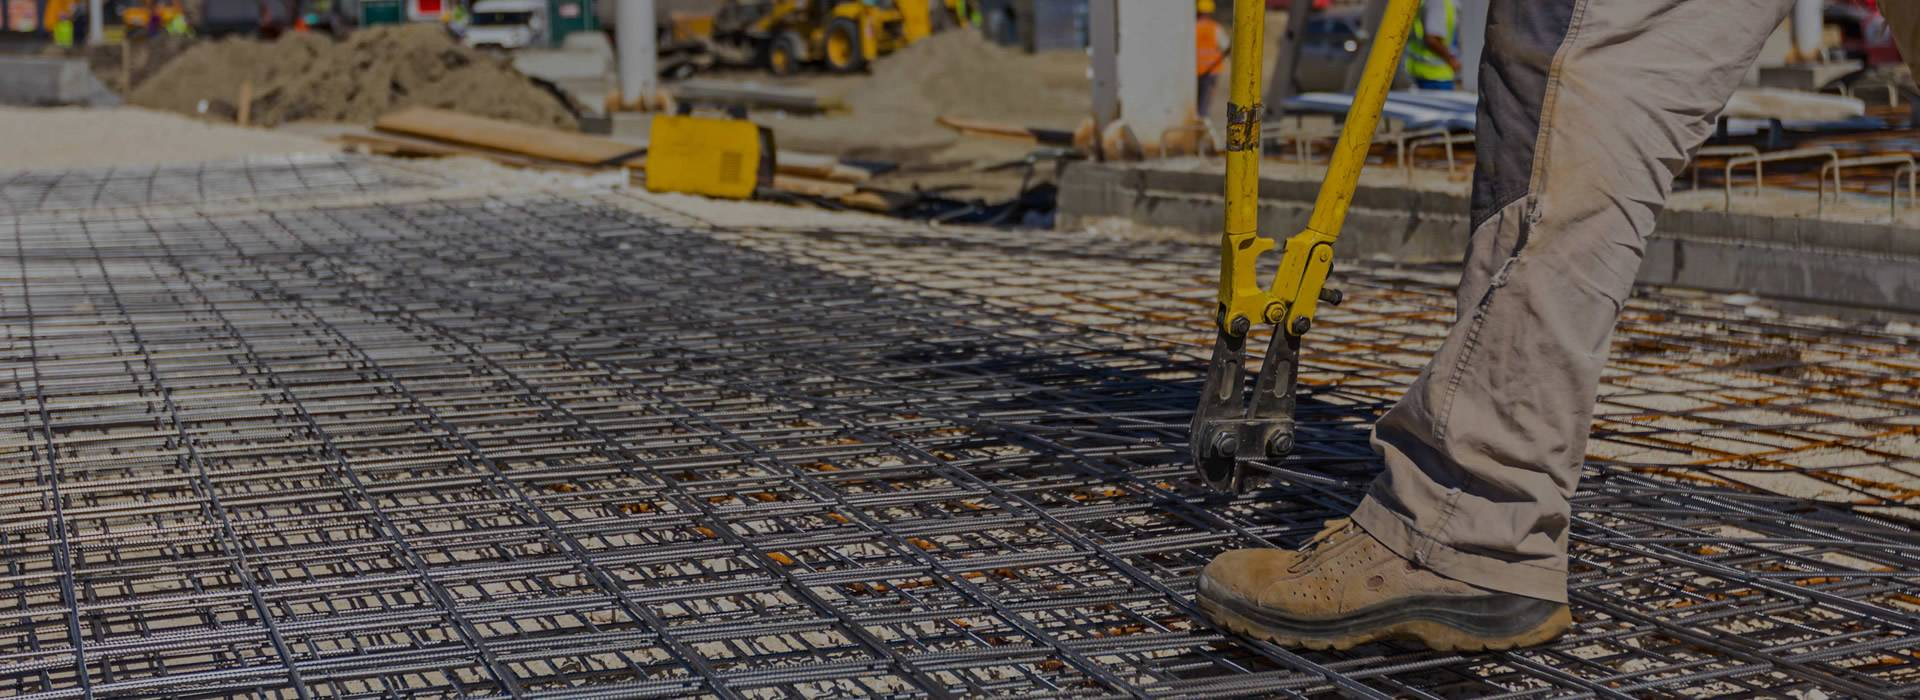 Concrete reinforcing mesh placed on the ground, and a worker uses pliers with two long yellow arms to fasten the mesh.